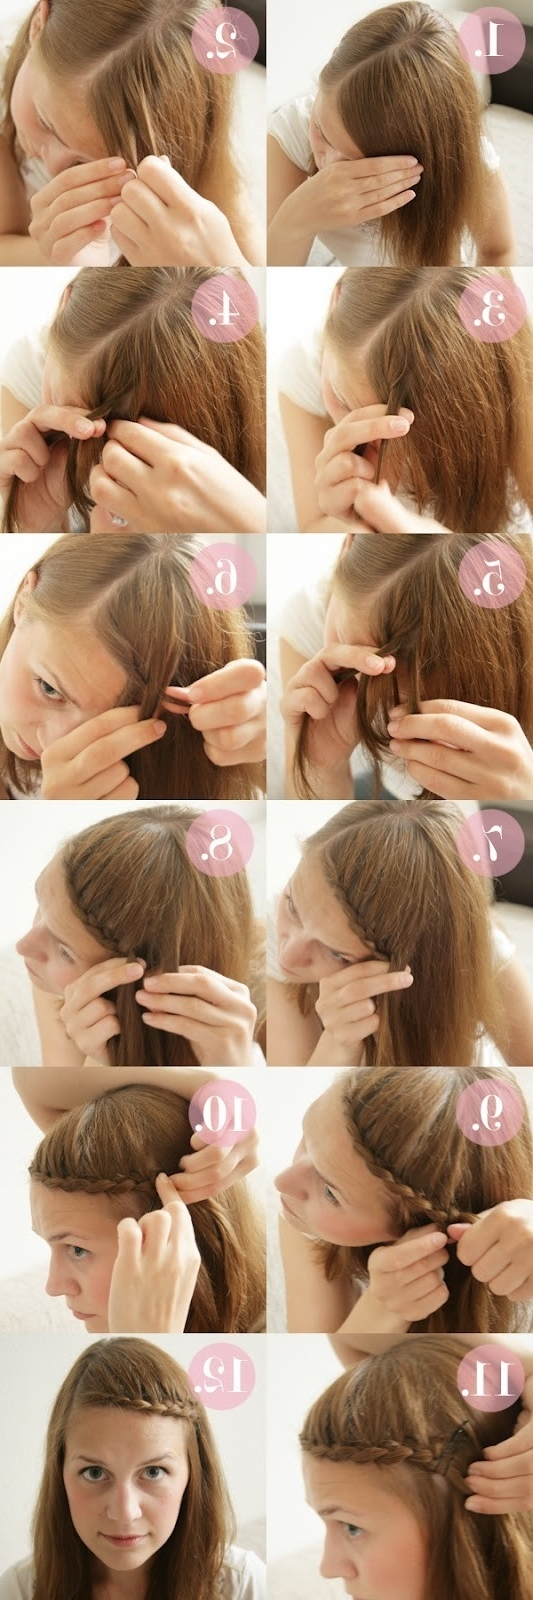 Current Braid And Side Bang Hairstyles Throughout 15 Braided Bangs Tutorials: Cute, Easy Hairstyles – Pretty Designs (View 3 of 15)